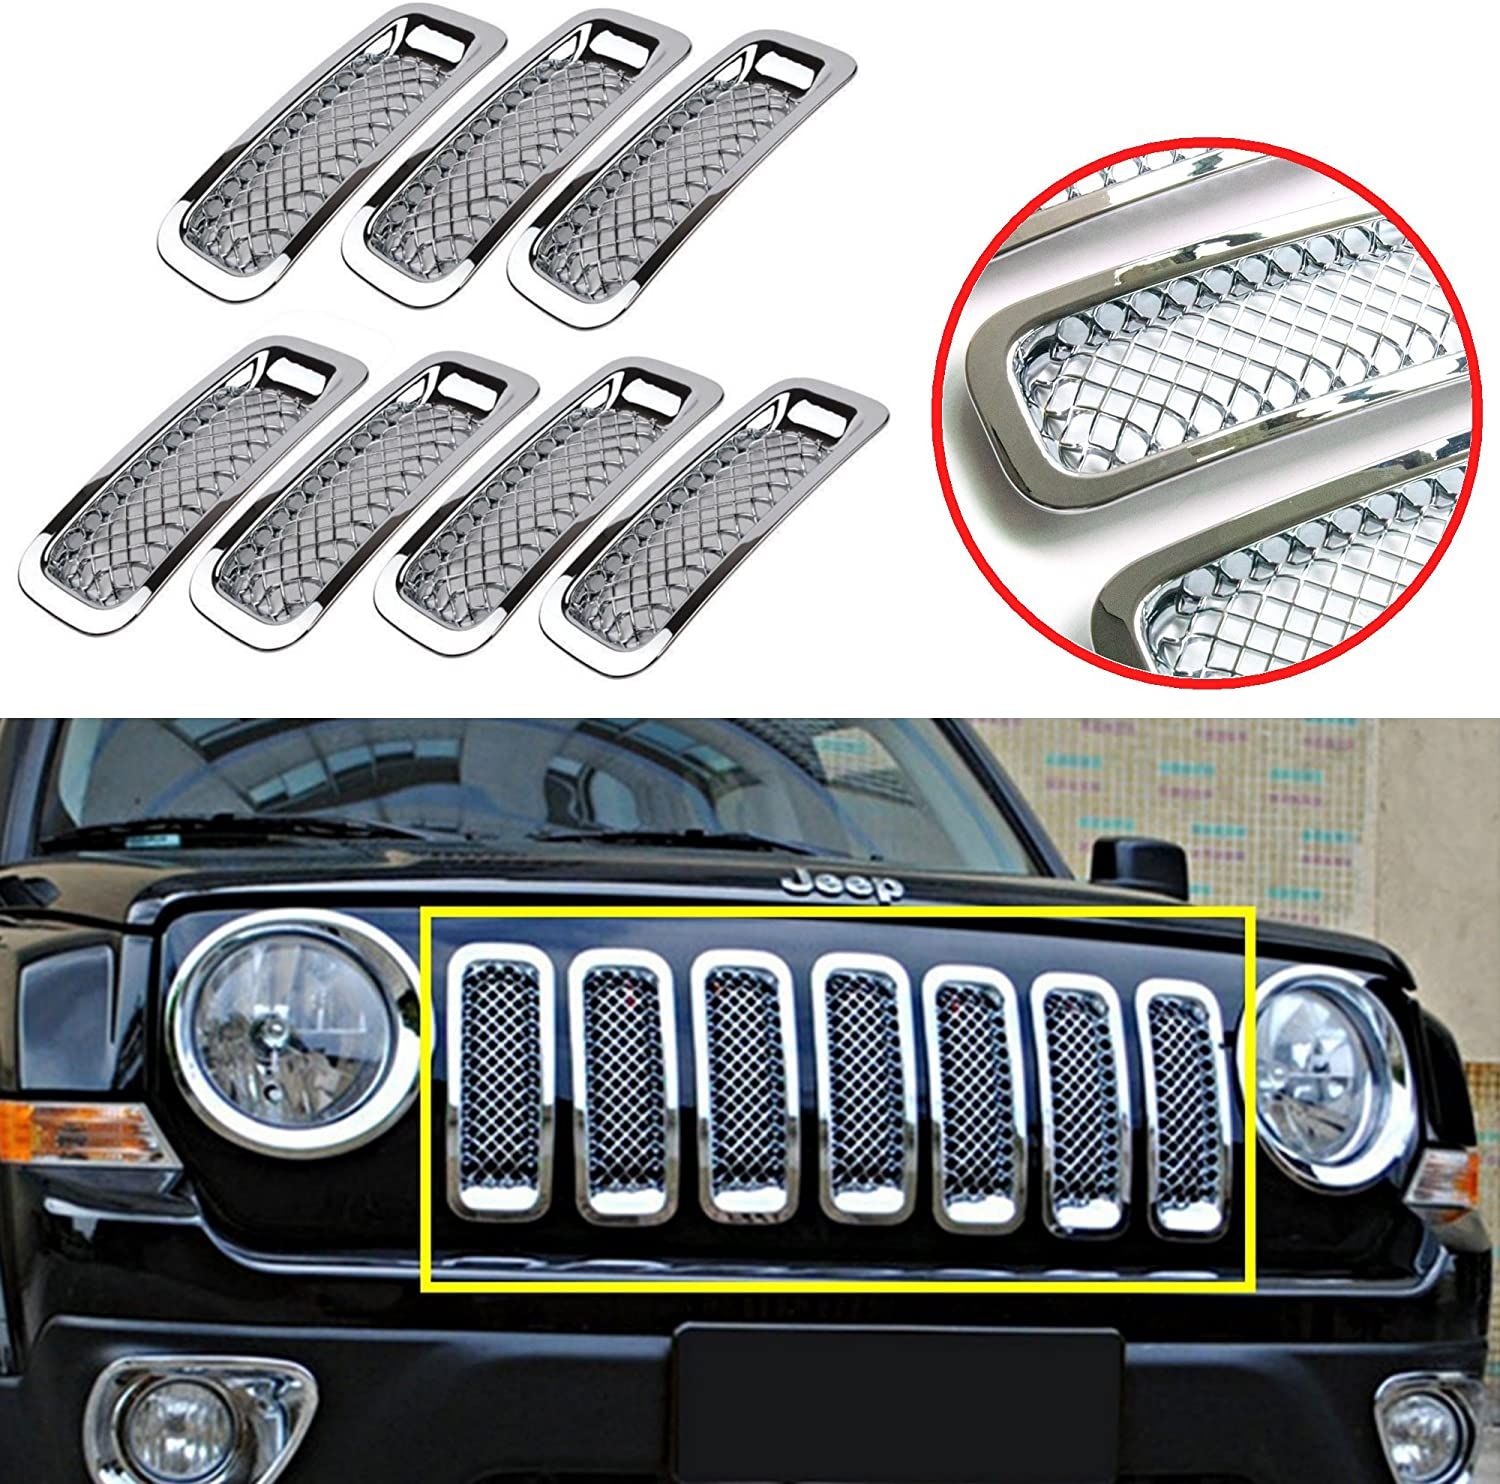 Bestong 7 Pcs Front Grill Insert Grille Cover Trim Kit for 2011-2017 Jeep Patriot Black, Mesh Grille